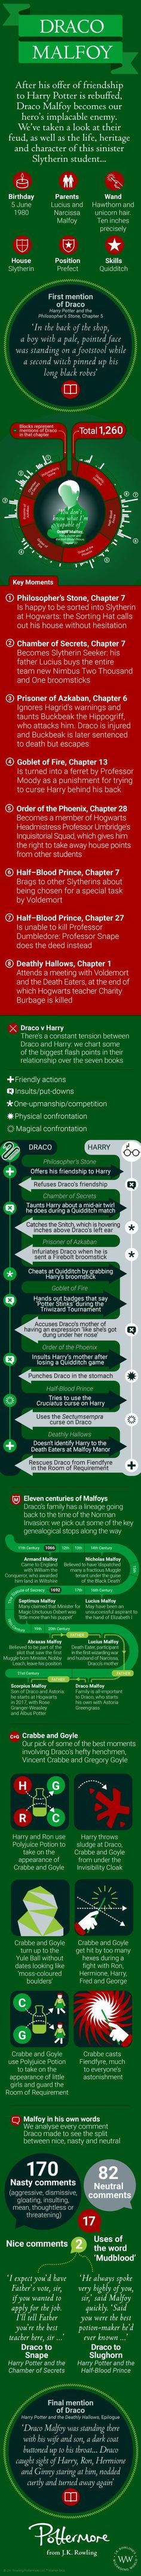 All About Draco Malfoy Mobile: